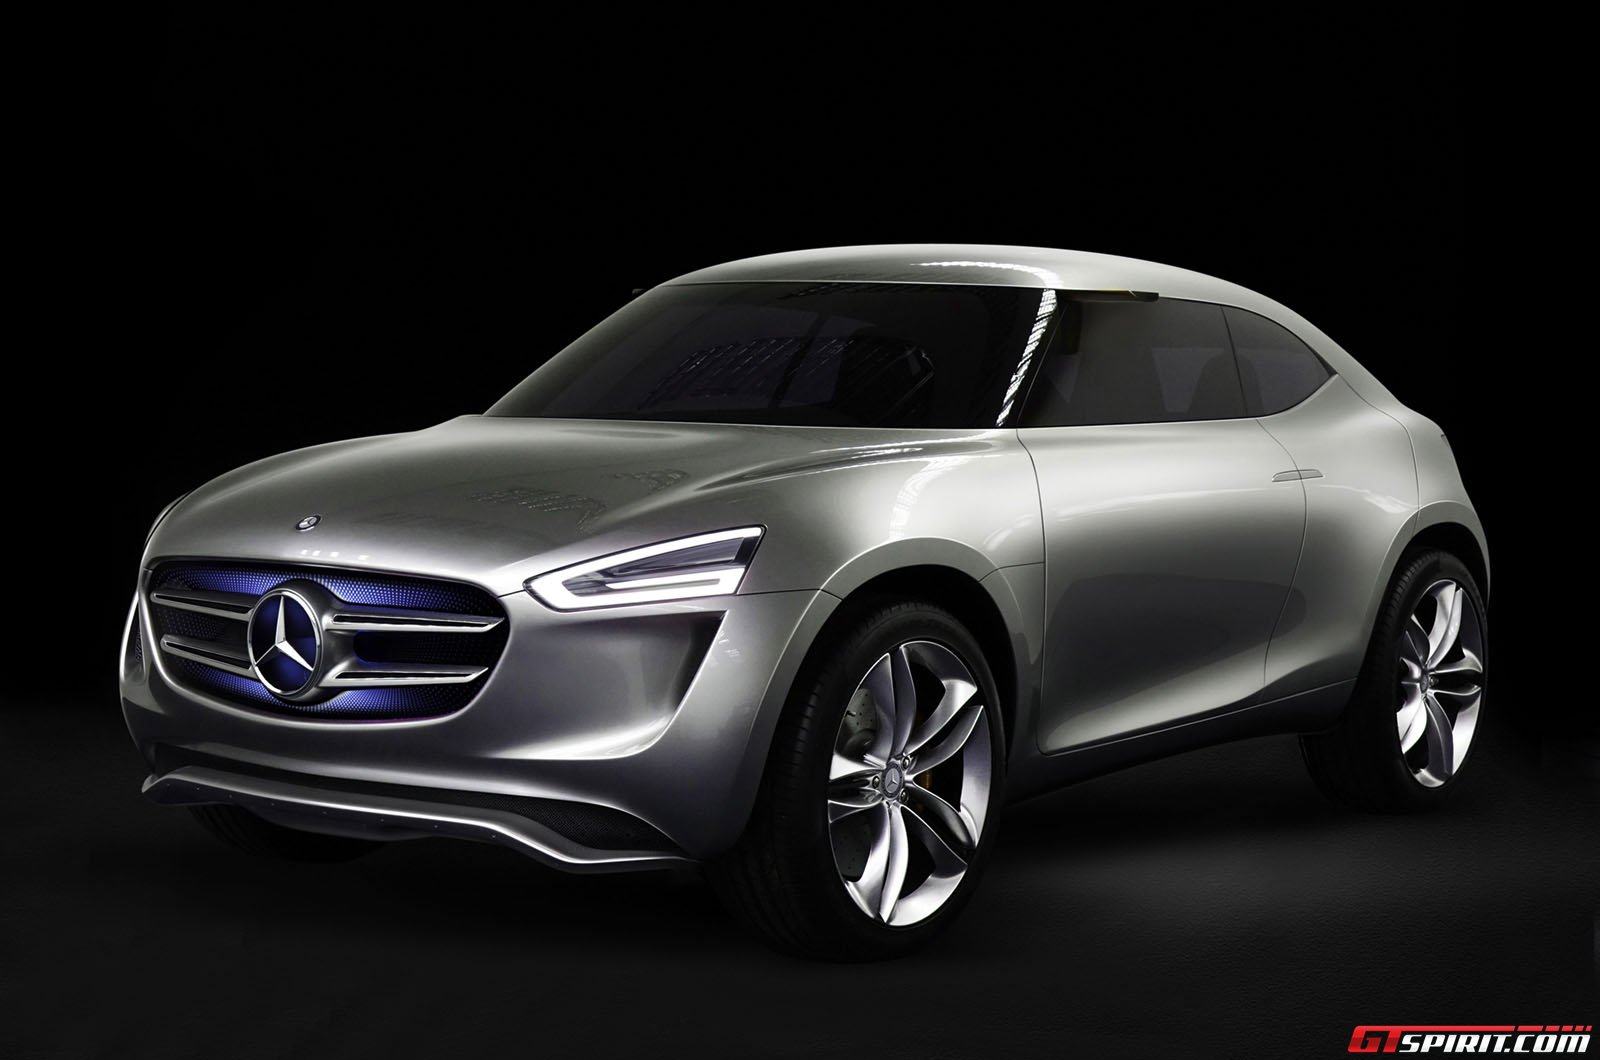 12 new mercedes benz models to be launched by 2020 gtspirit for Mercedes benz suv models